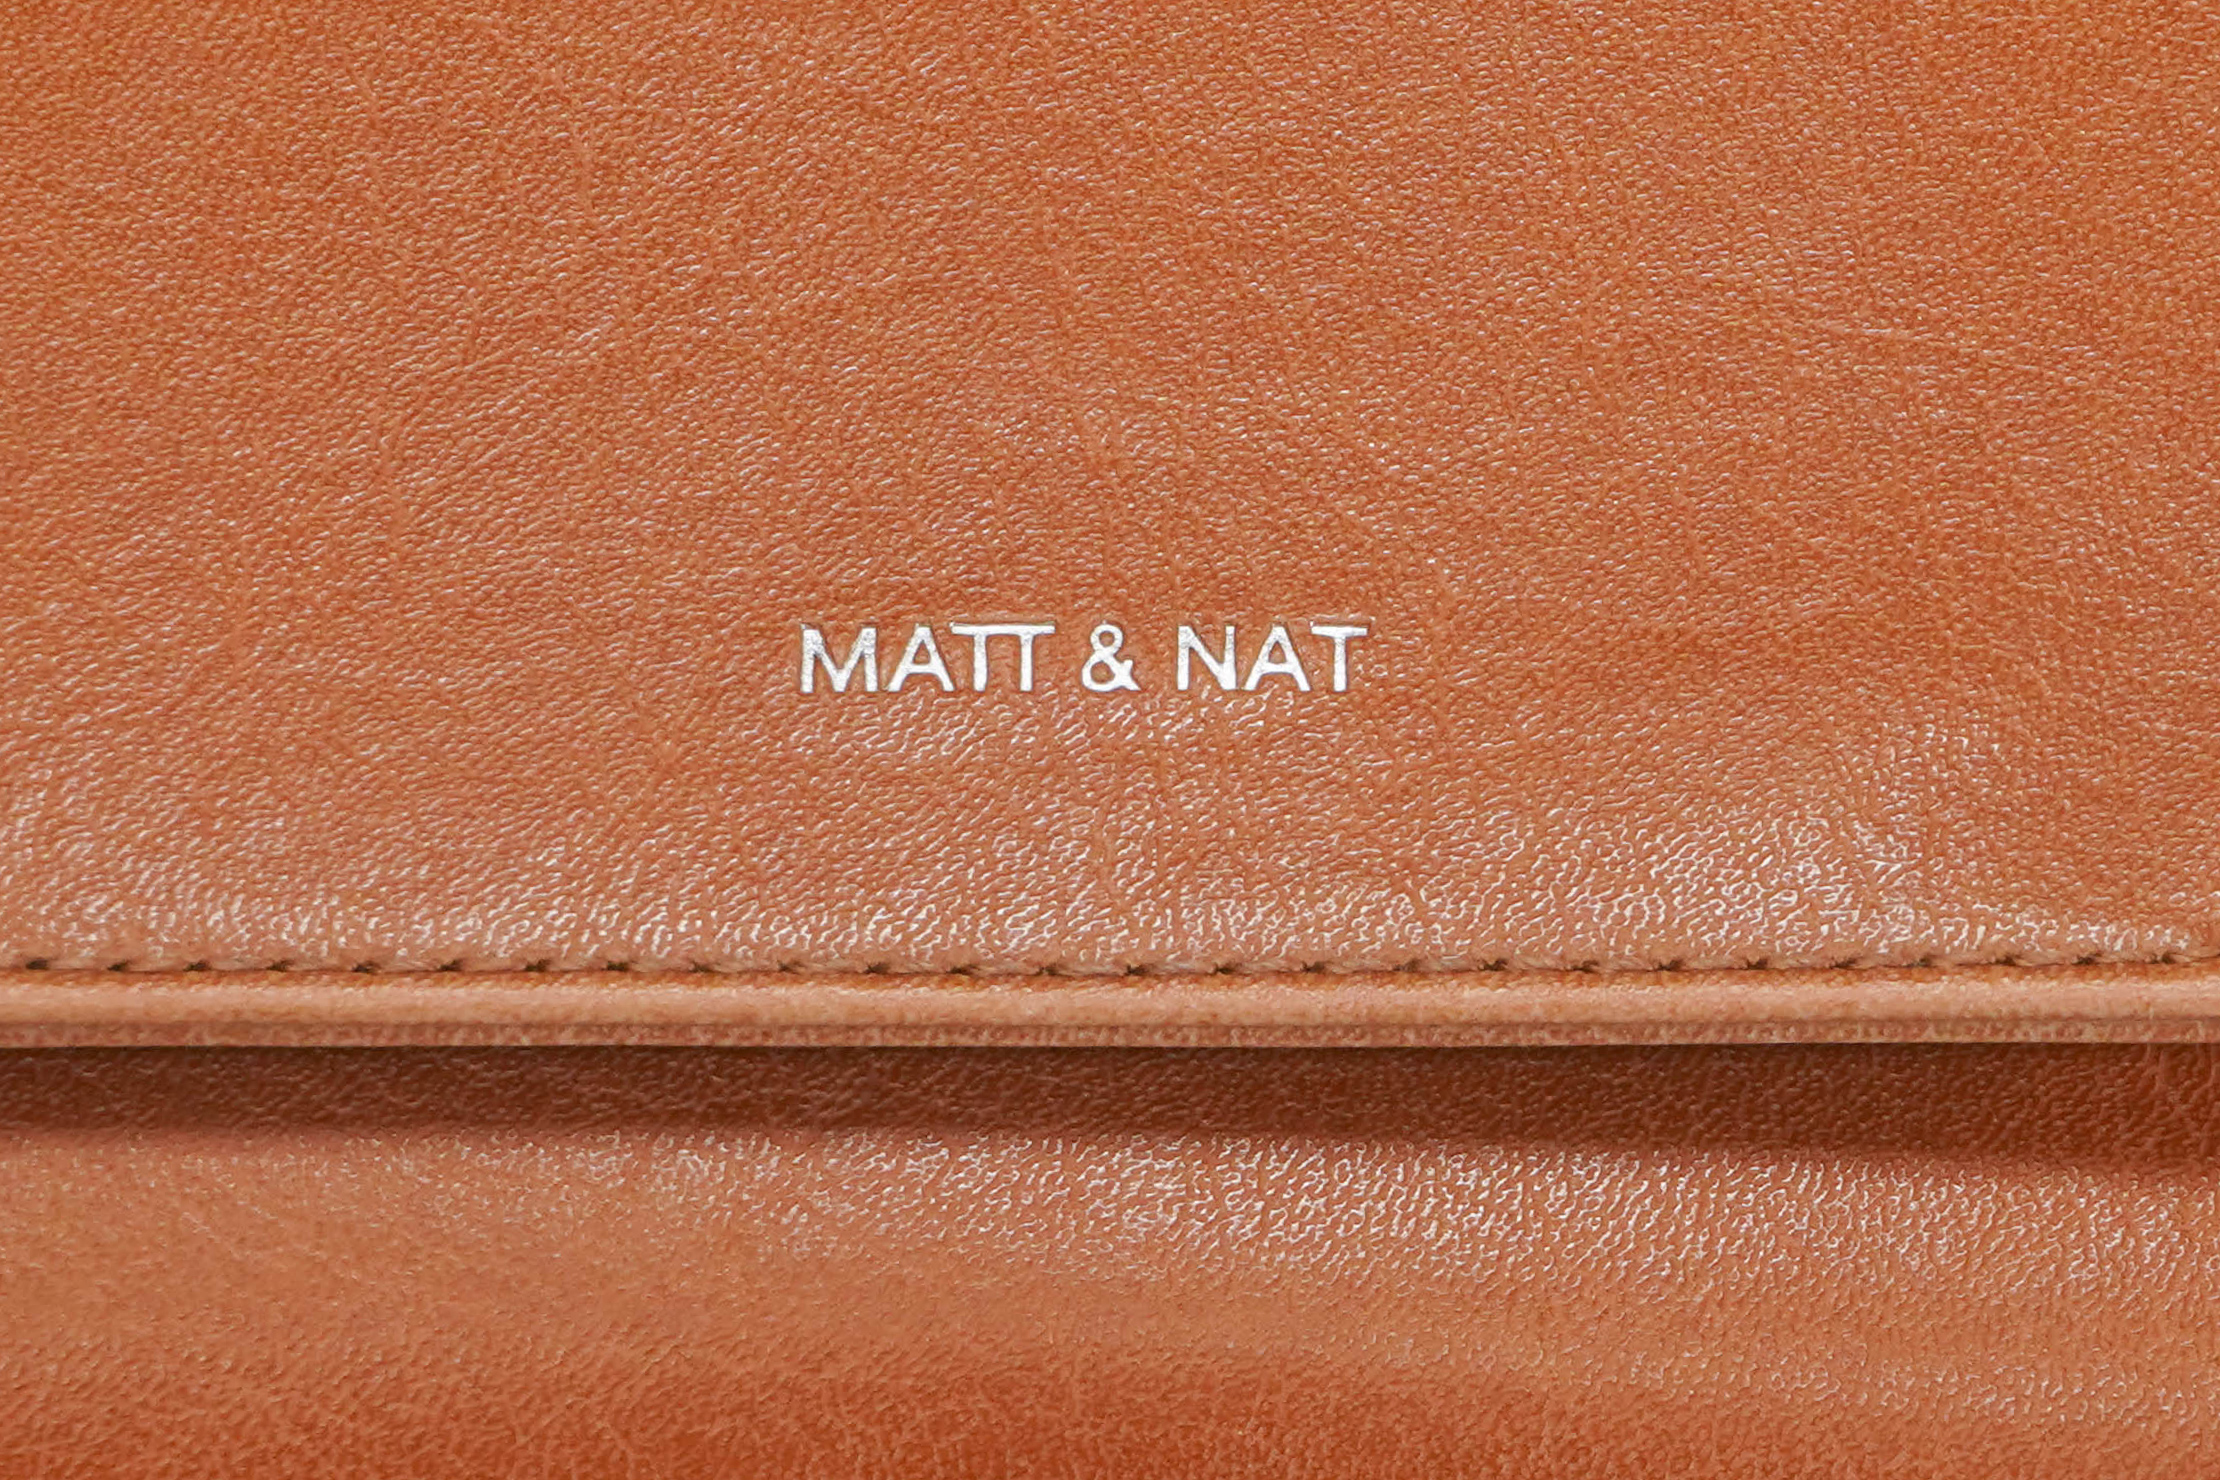 Matt & Nat VERASM Wallet Logo